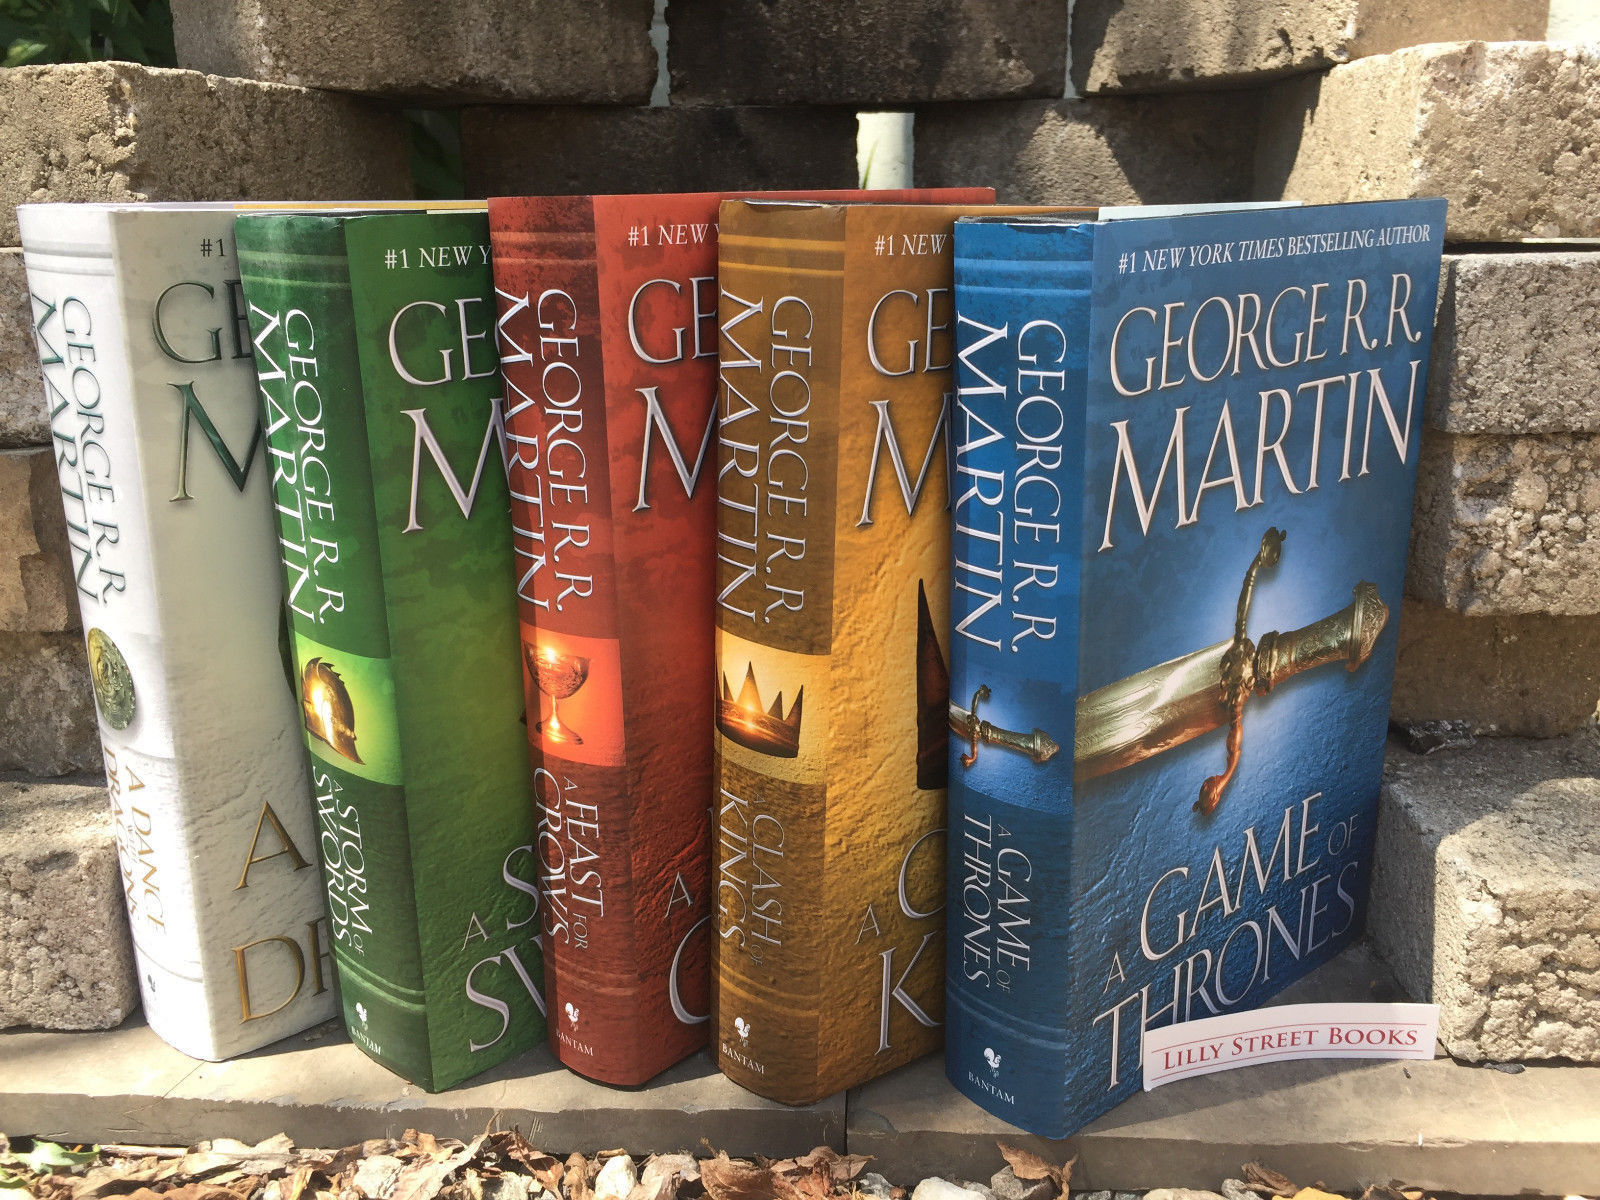 Song of Ice and Fire Game of Thrones Hardcover Set George R. R. Martin Set NEW for sale  USA